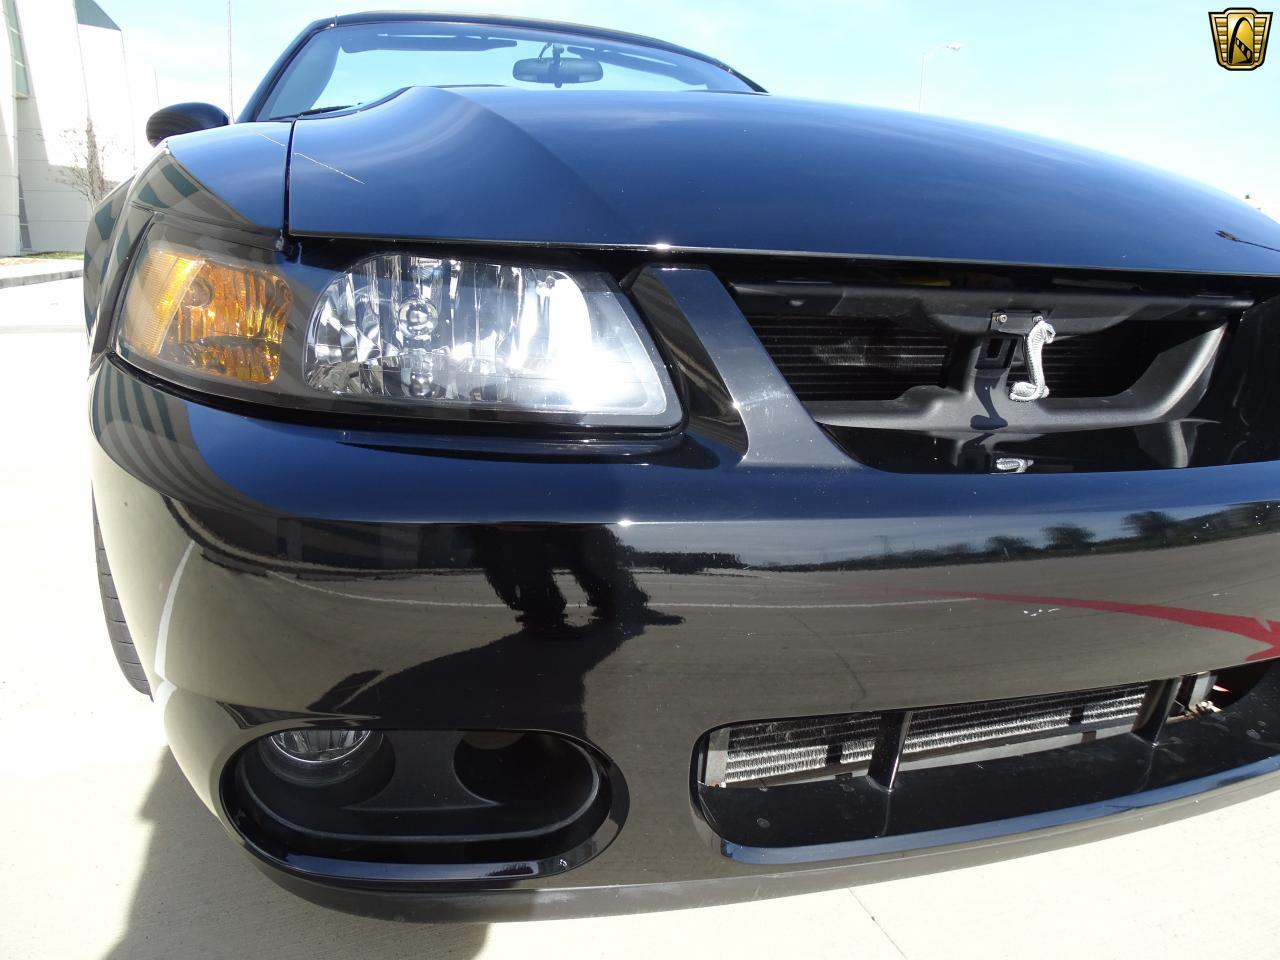 Large Picture of '03 Mustang located in Texas - $27,995.00 Offered by Gateway Classic Cars - Houston - KES2